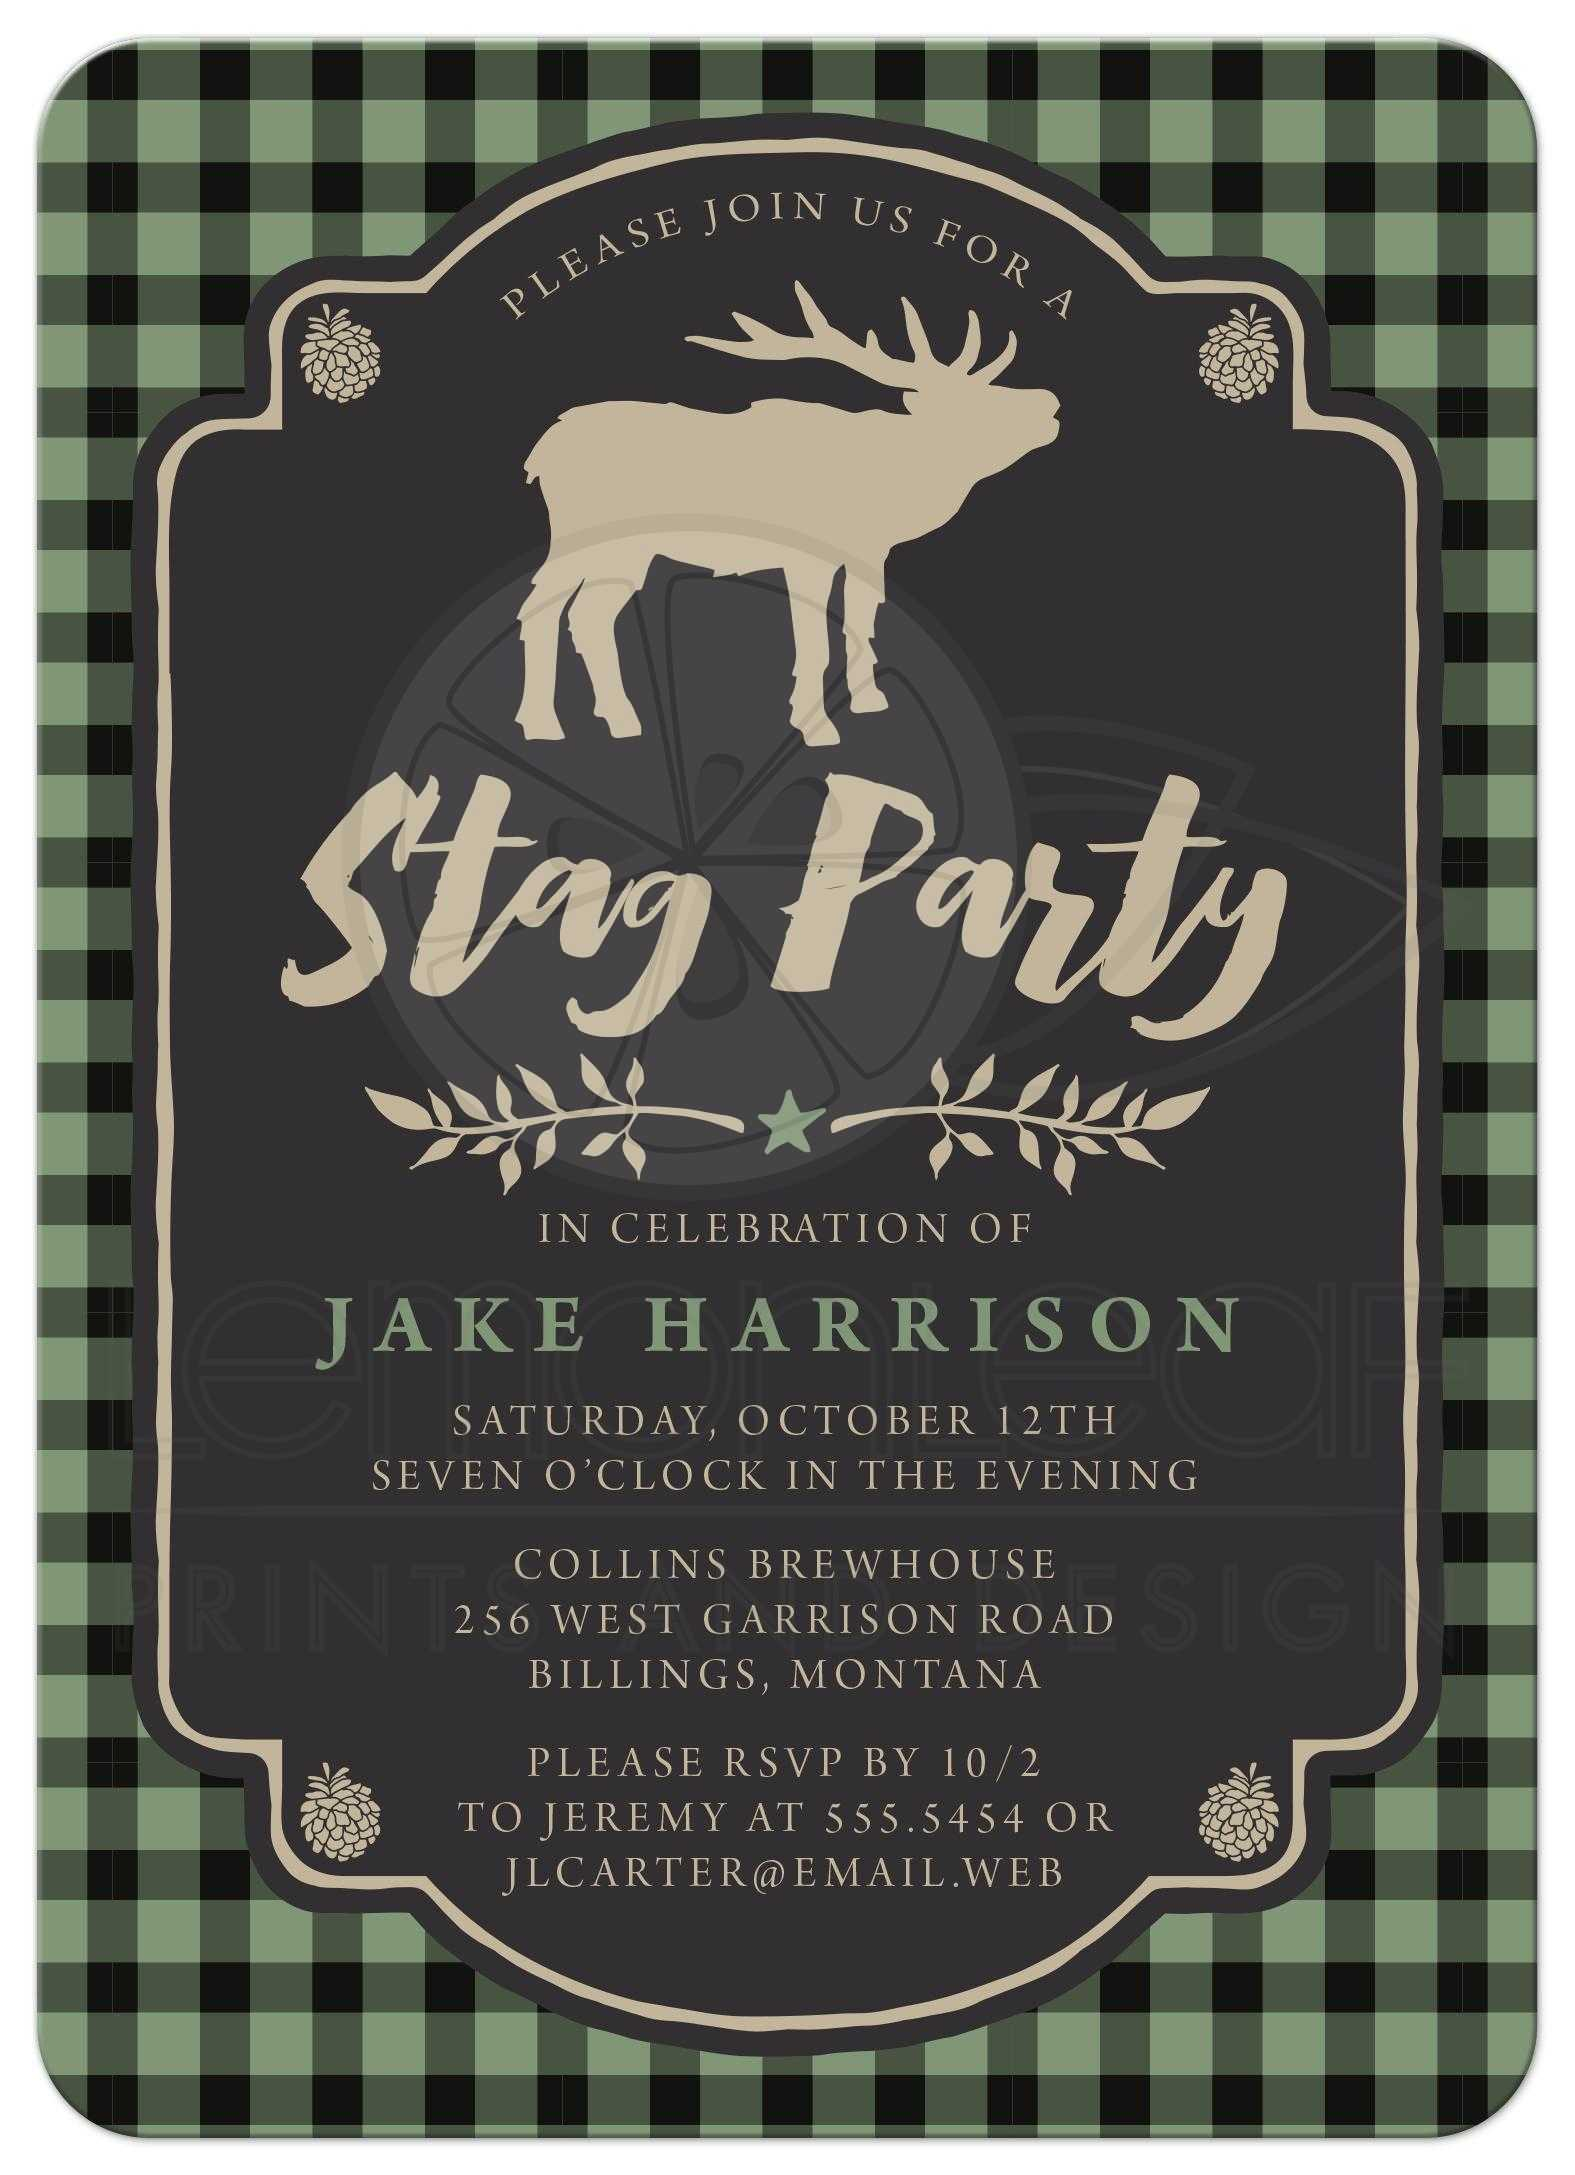 Bachelor Party Invitations - Rustic Green & Black Plaid Stag Party